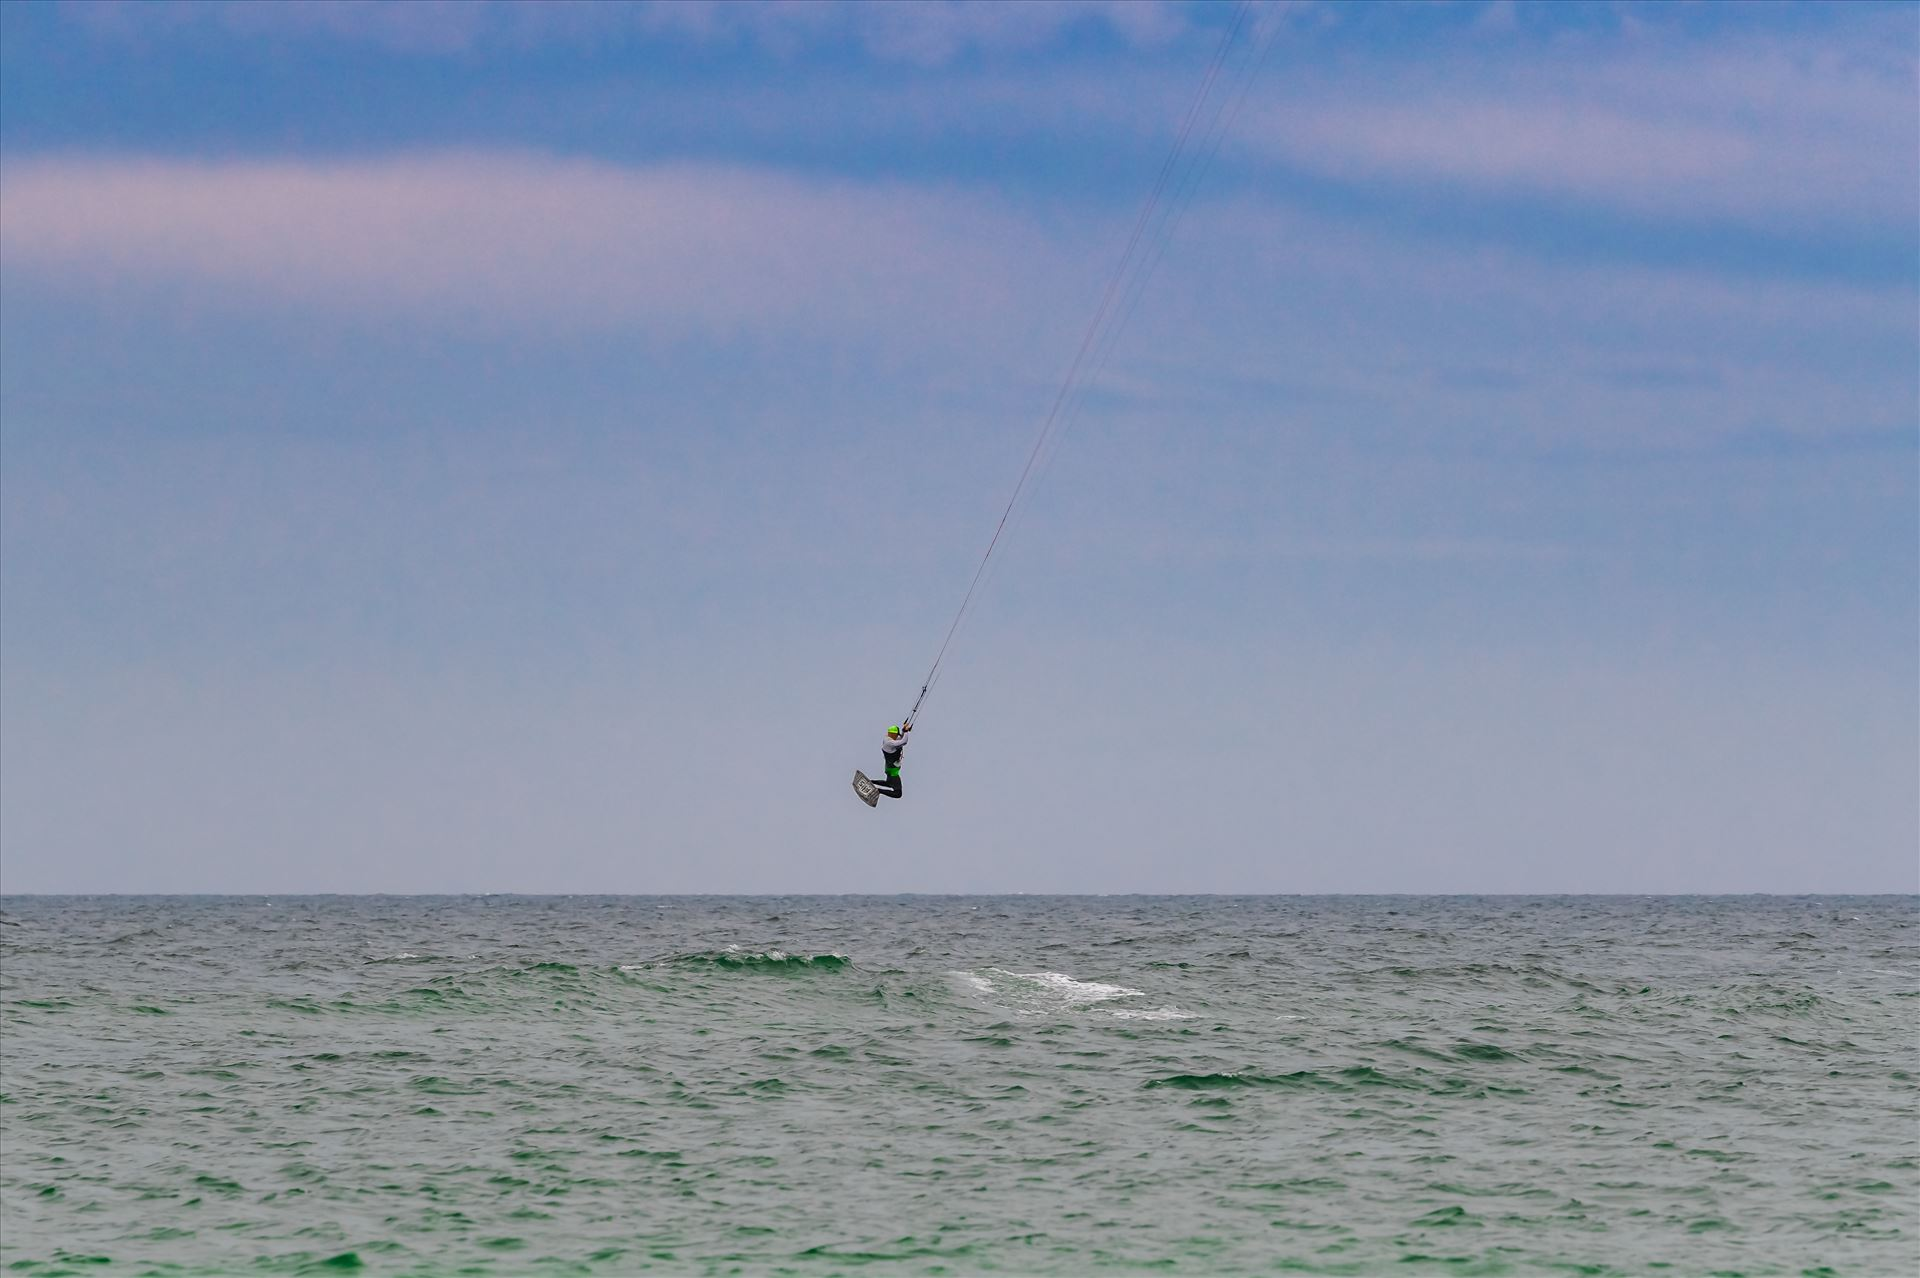 Emerald Coast Kiteboarding - Kiteboarding at St. Andrews State Park, Panama City, Florida by Terry Kelly Photography